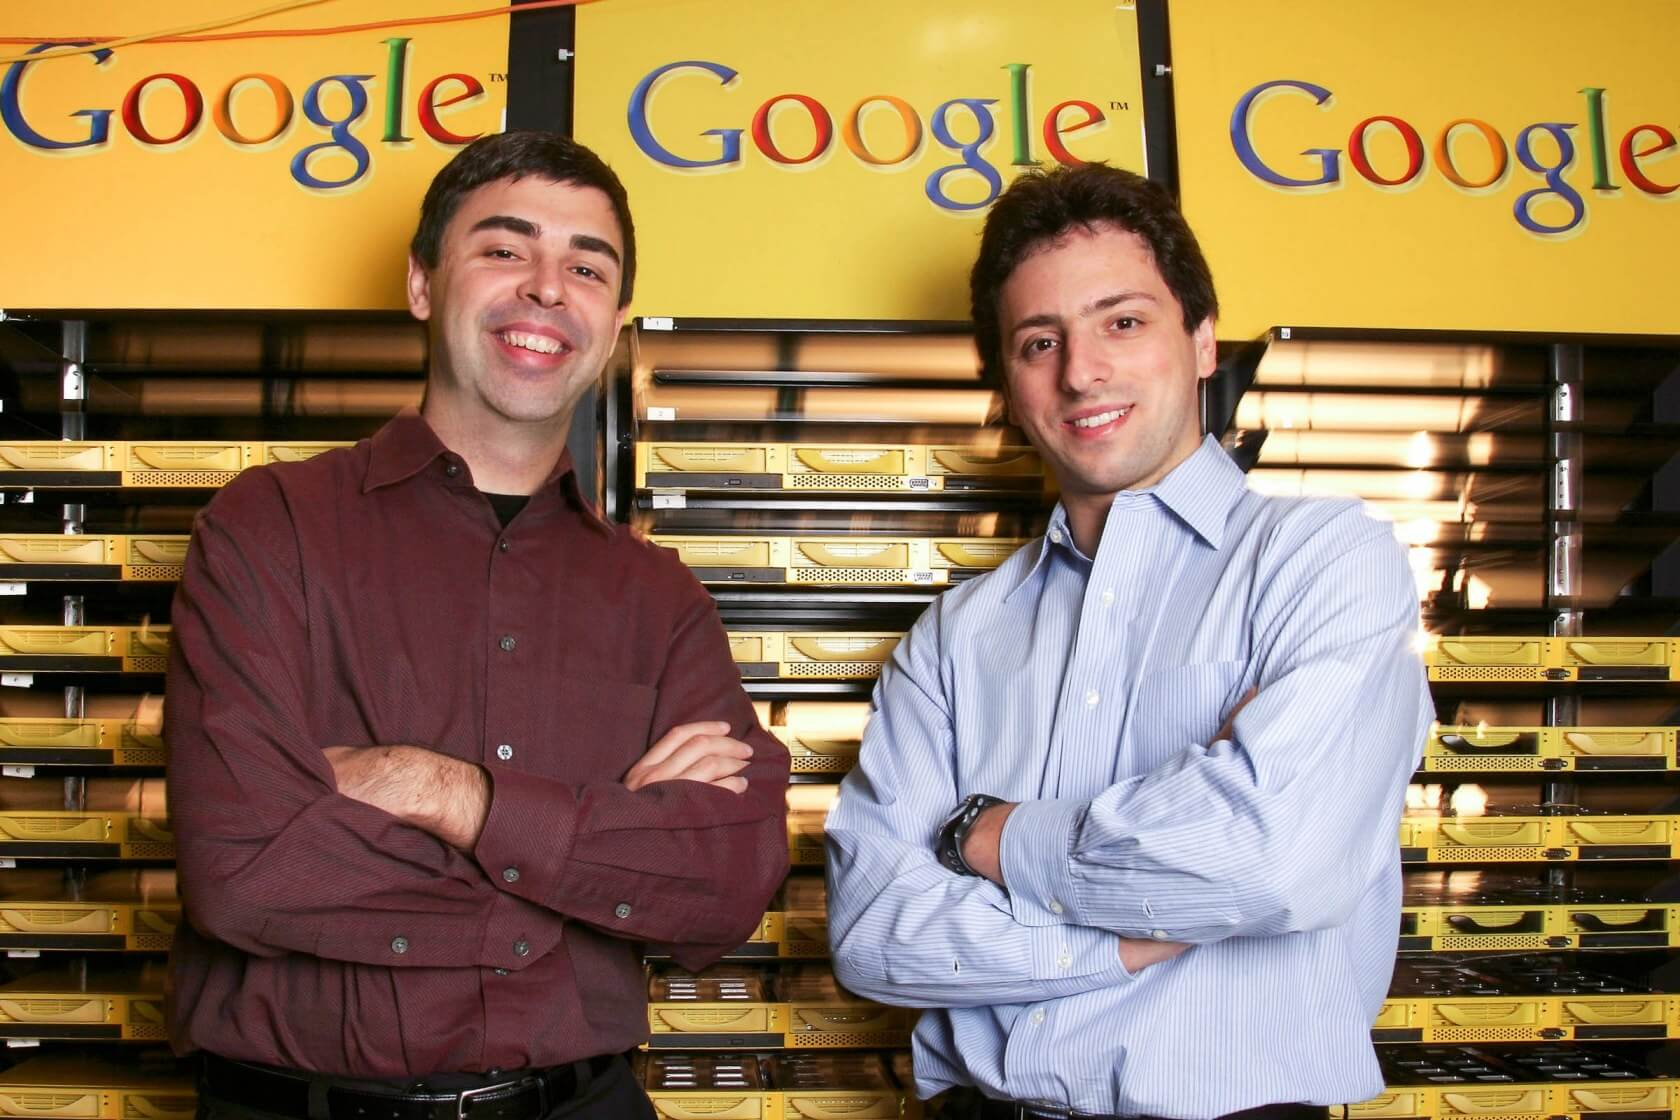 Google founders Sergey Brin and Larry Page step down from their Alphabet leadership roles